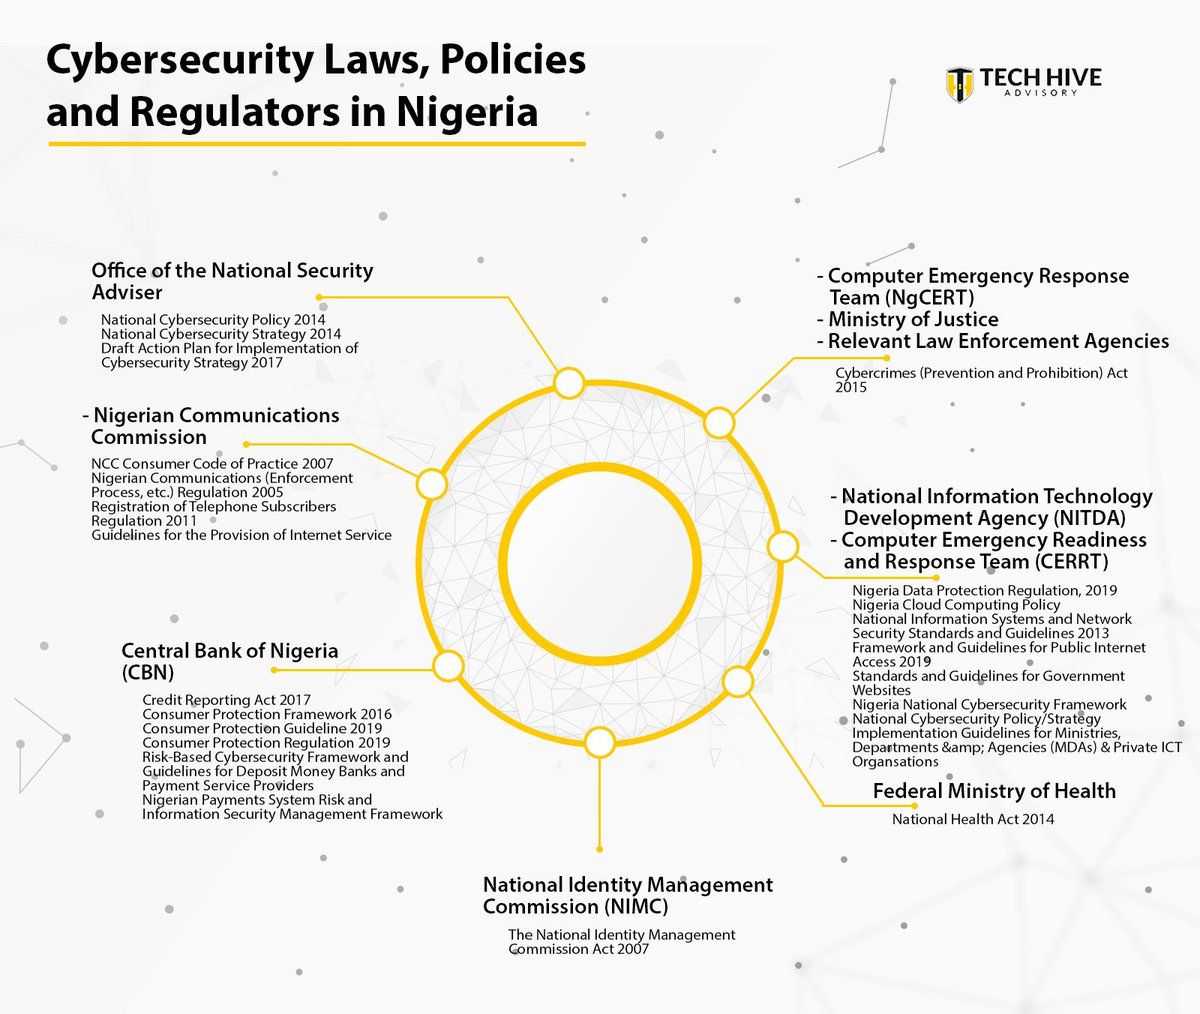 We have updated our mapping of privacy, data protection and cybersecurity laws, policies and regulators in Nigeria. pic.twitter.com/mnojp7Od6Y